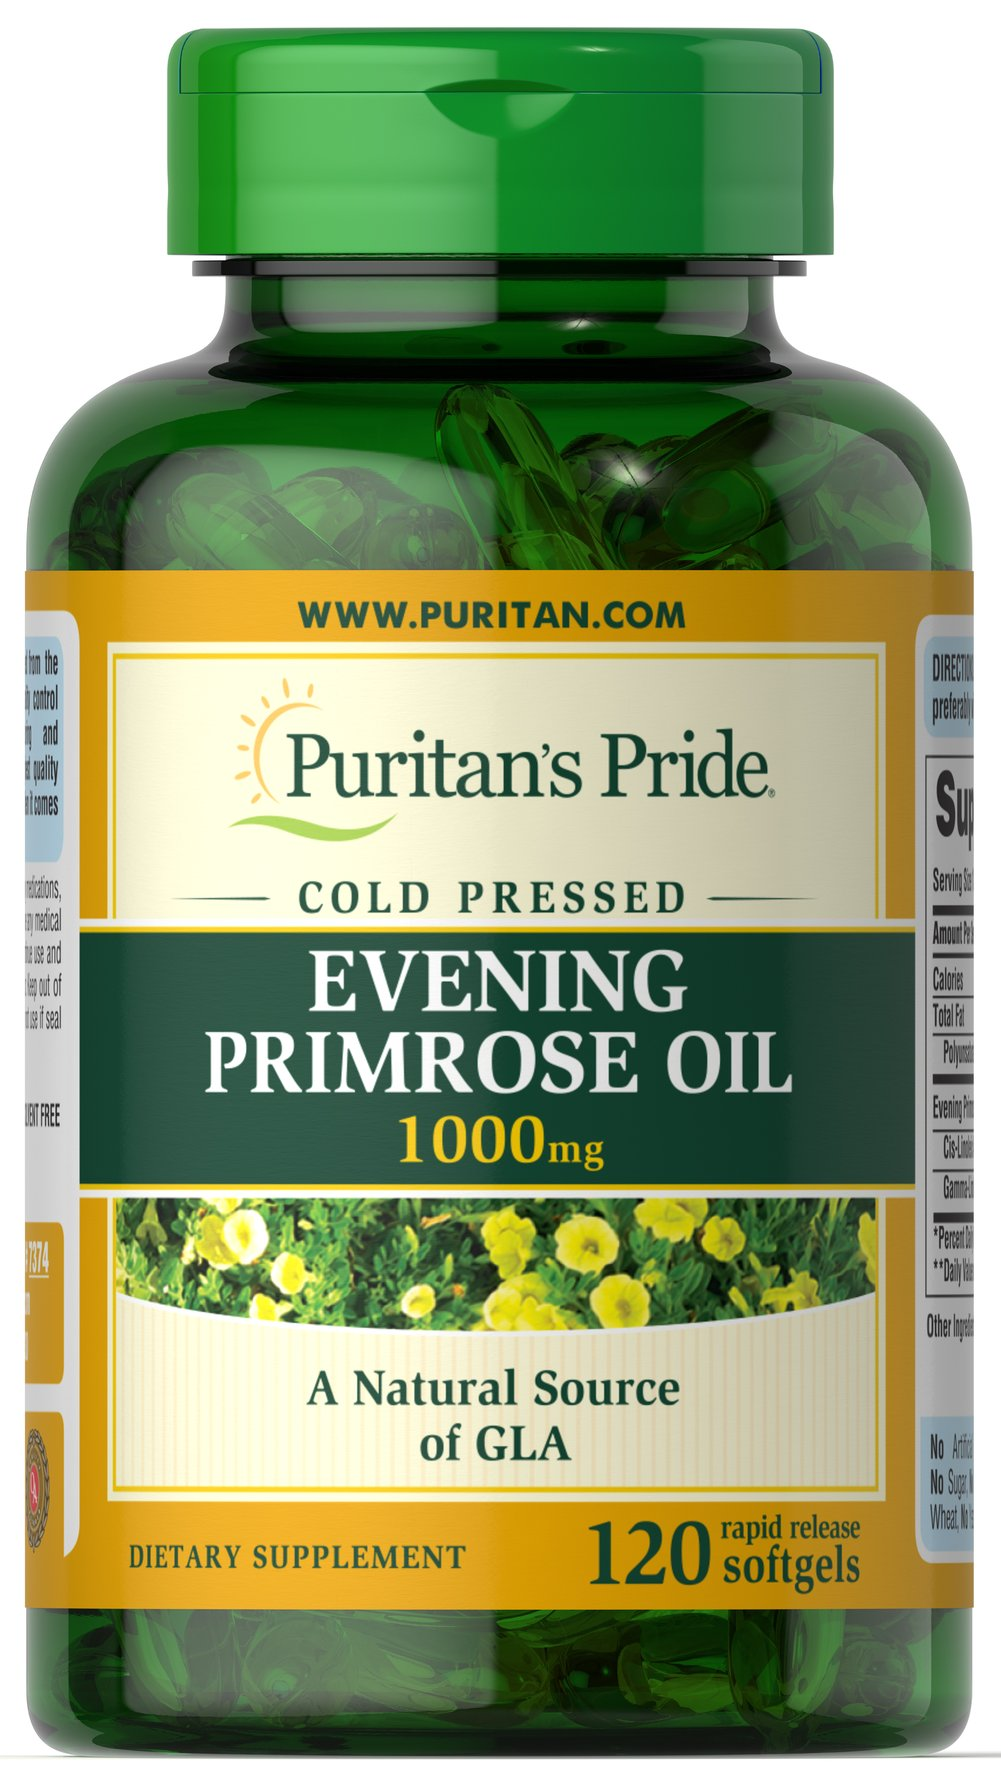 Evening Primrose Oil 1000 mg with GLA  120 Softgels 1000 mg $21.74